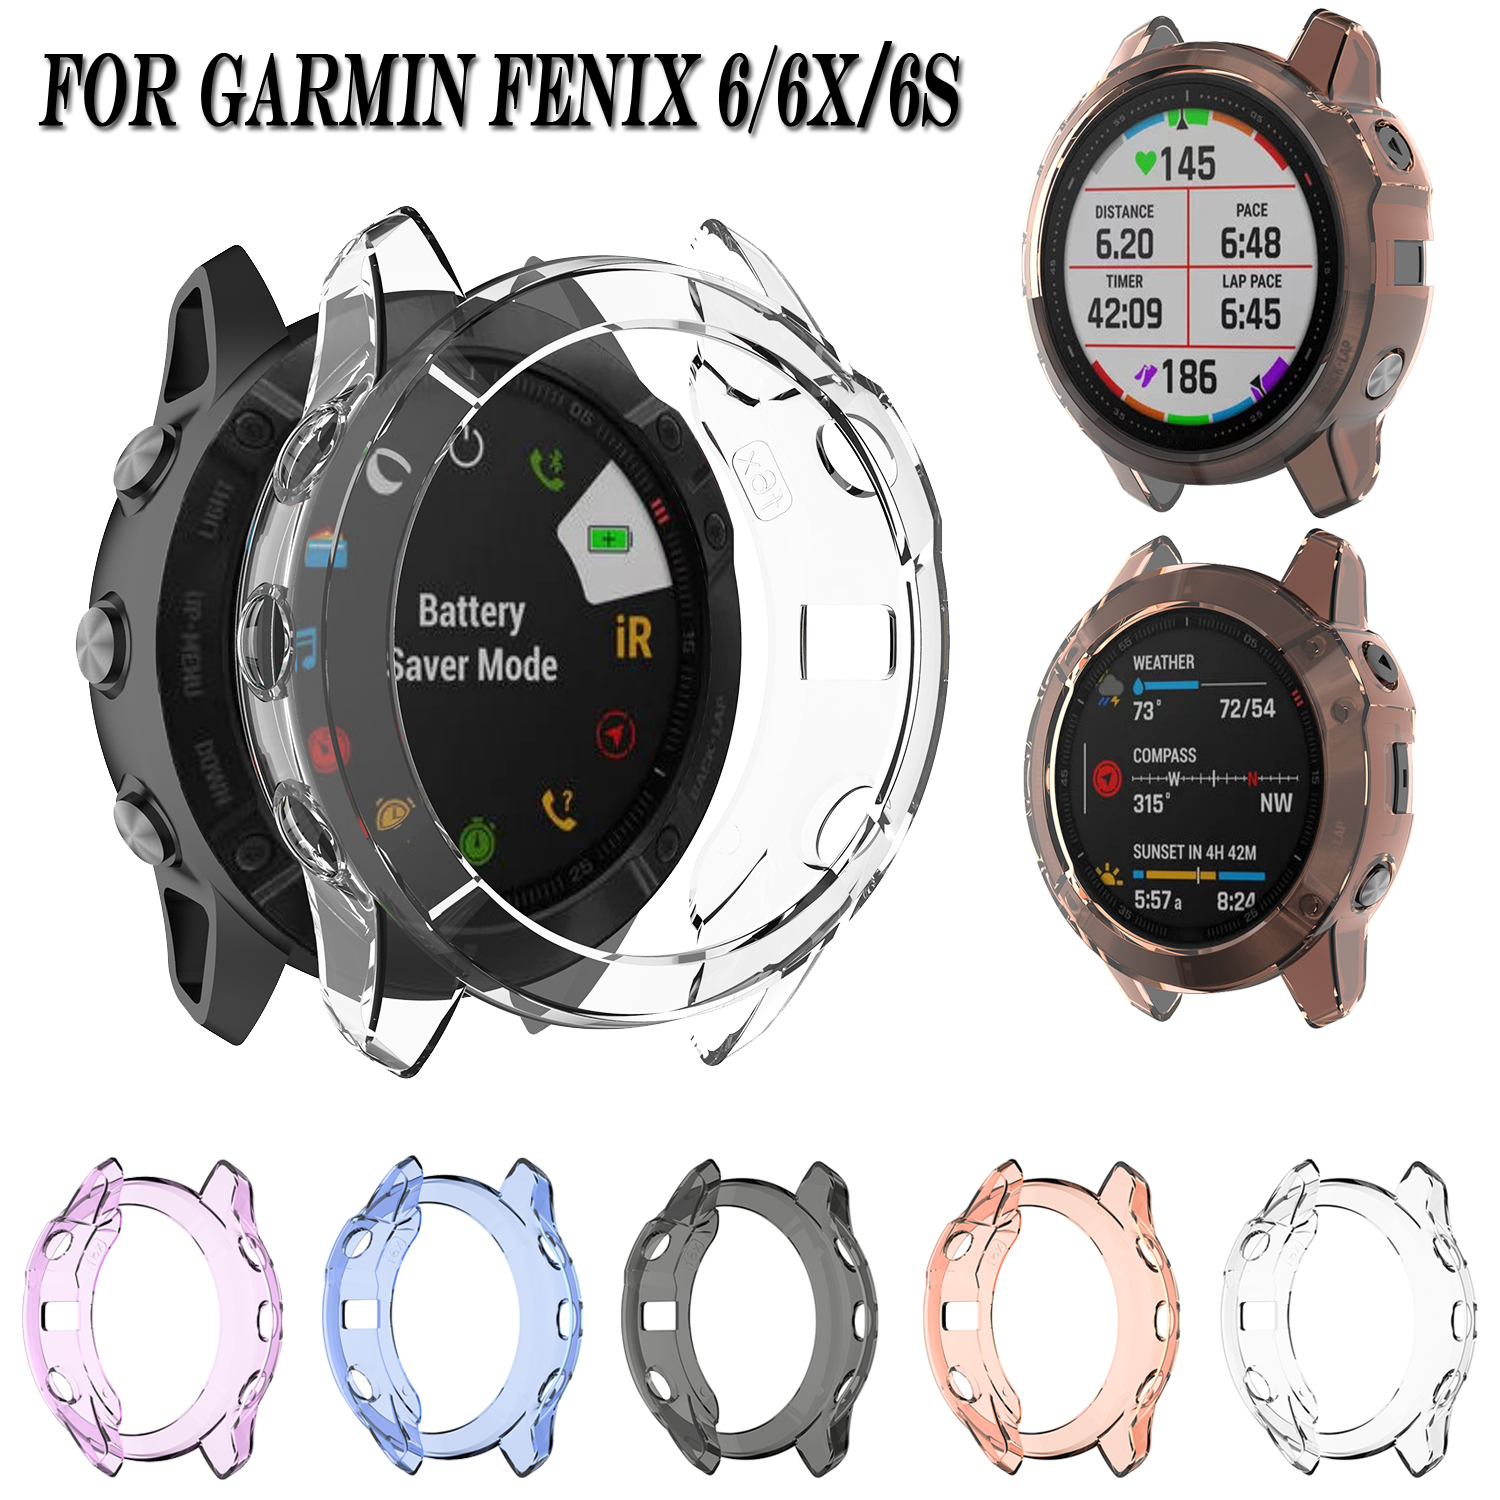 Fashion Silicone Shockproof Protective Case Cover For Garmin Fenix 6 6x 6s Transparent Soft TPU Protector Shell Frame Skin